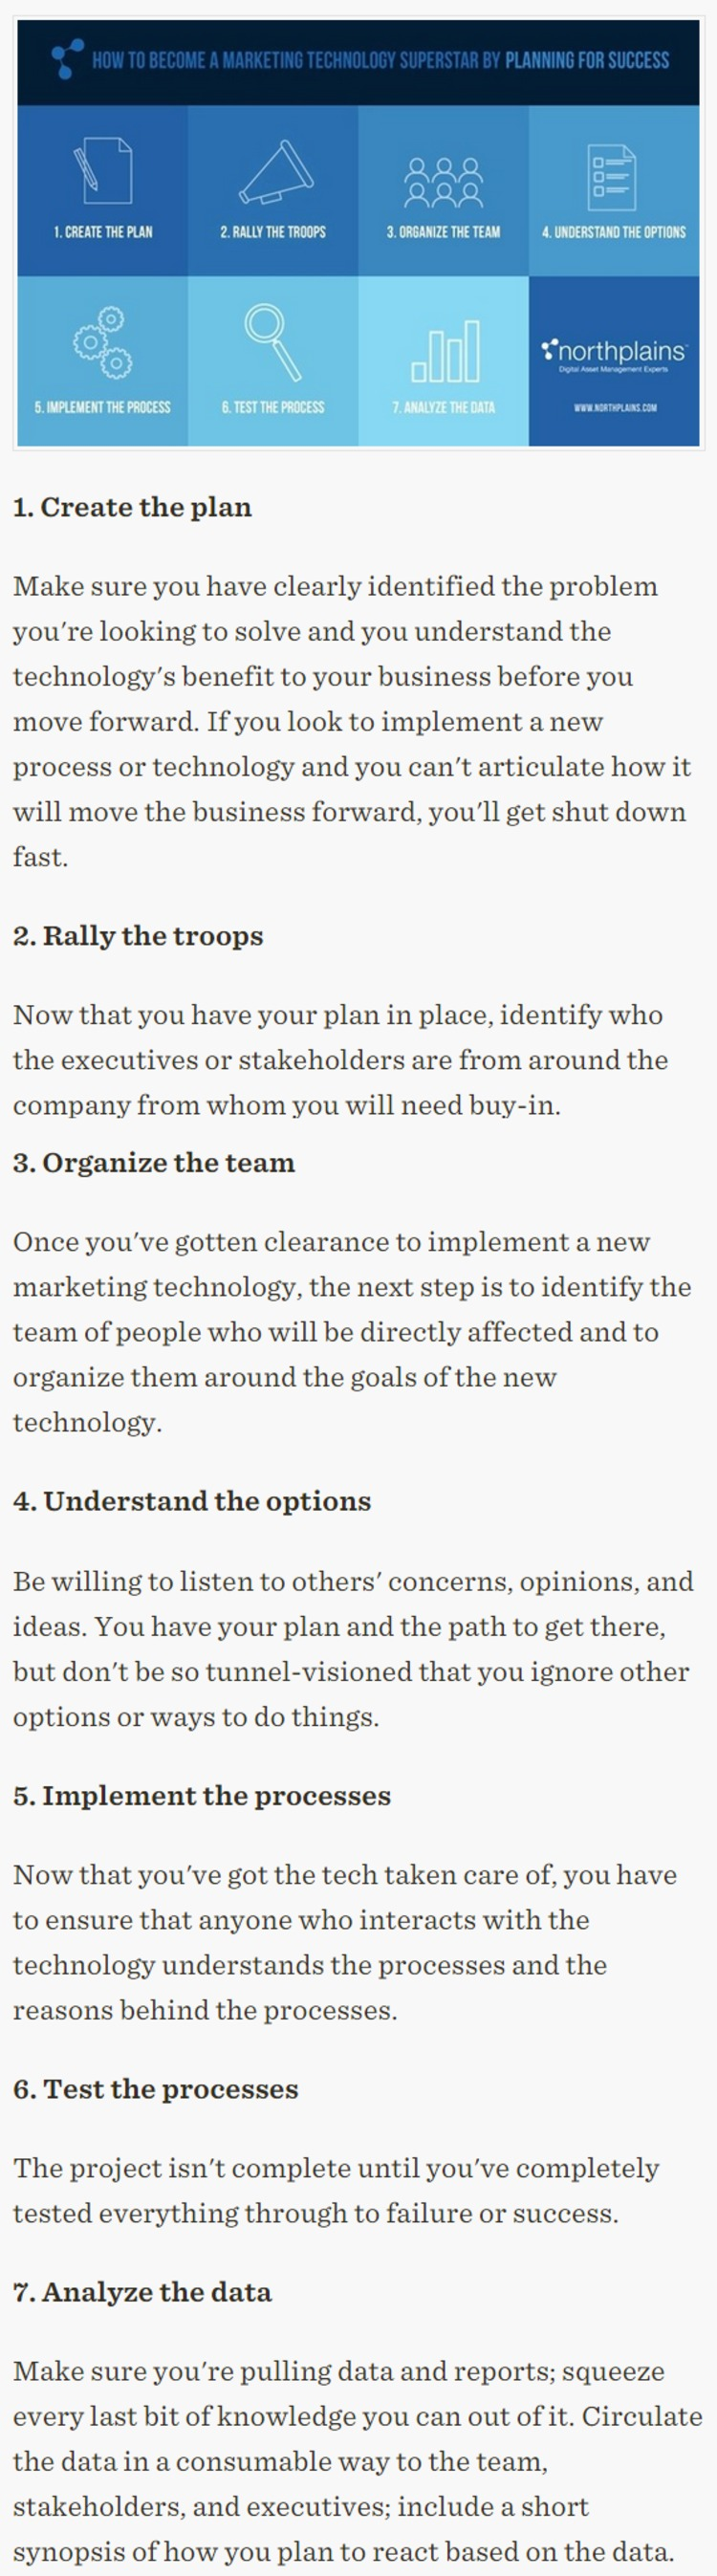 Seven Steps to Successful Marketing Technology Adoption - Profs | The Marketing Technology Alert | Scoop.it